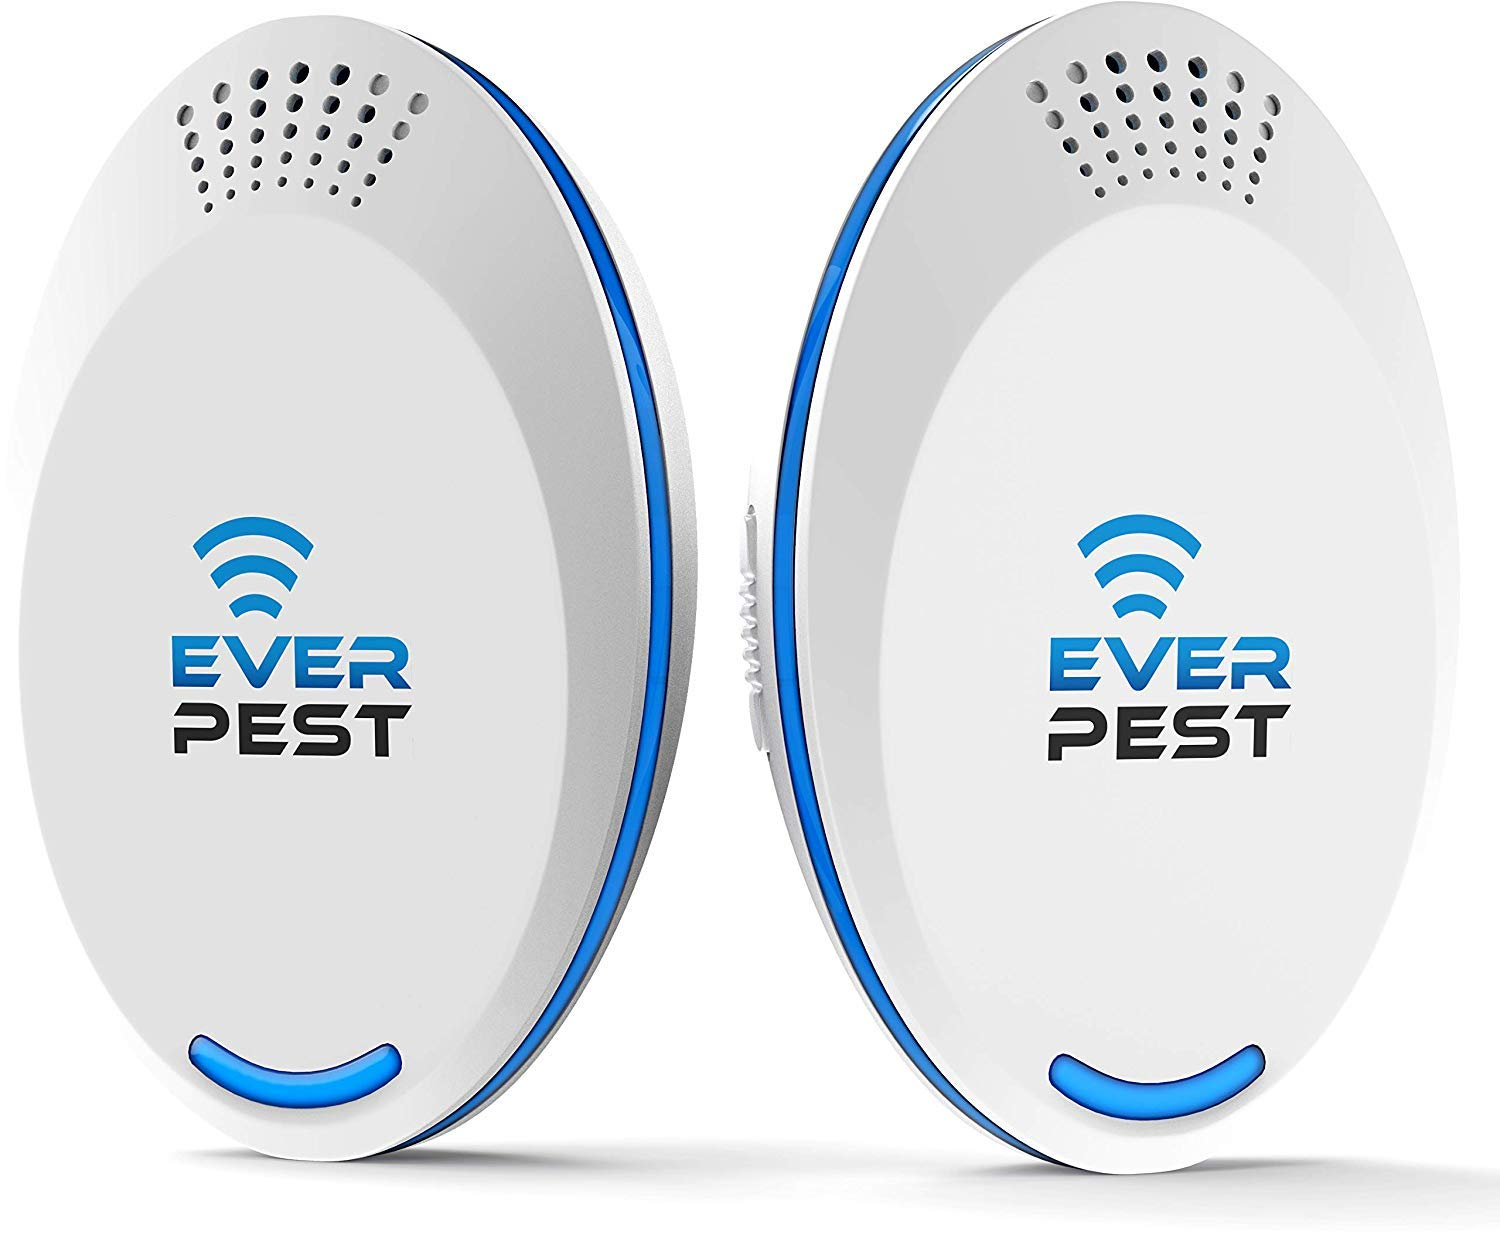 Ultrasonic Pest Repellent Control 2018 (2-Pack), Plug in Home, Flea, Rats, Roaches, Cockroaches, Fruit Fly, Rodent, Insect, ndoor and Outdoor Repeller, Get Rid of Mosquito, Ant Ever Pest